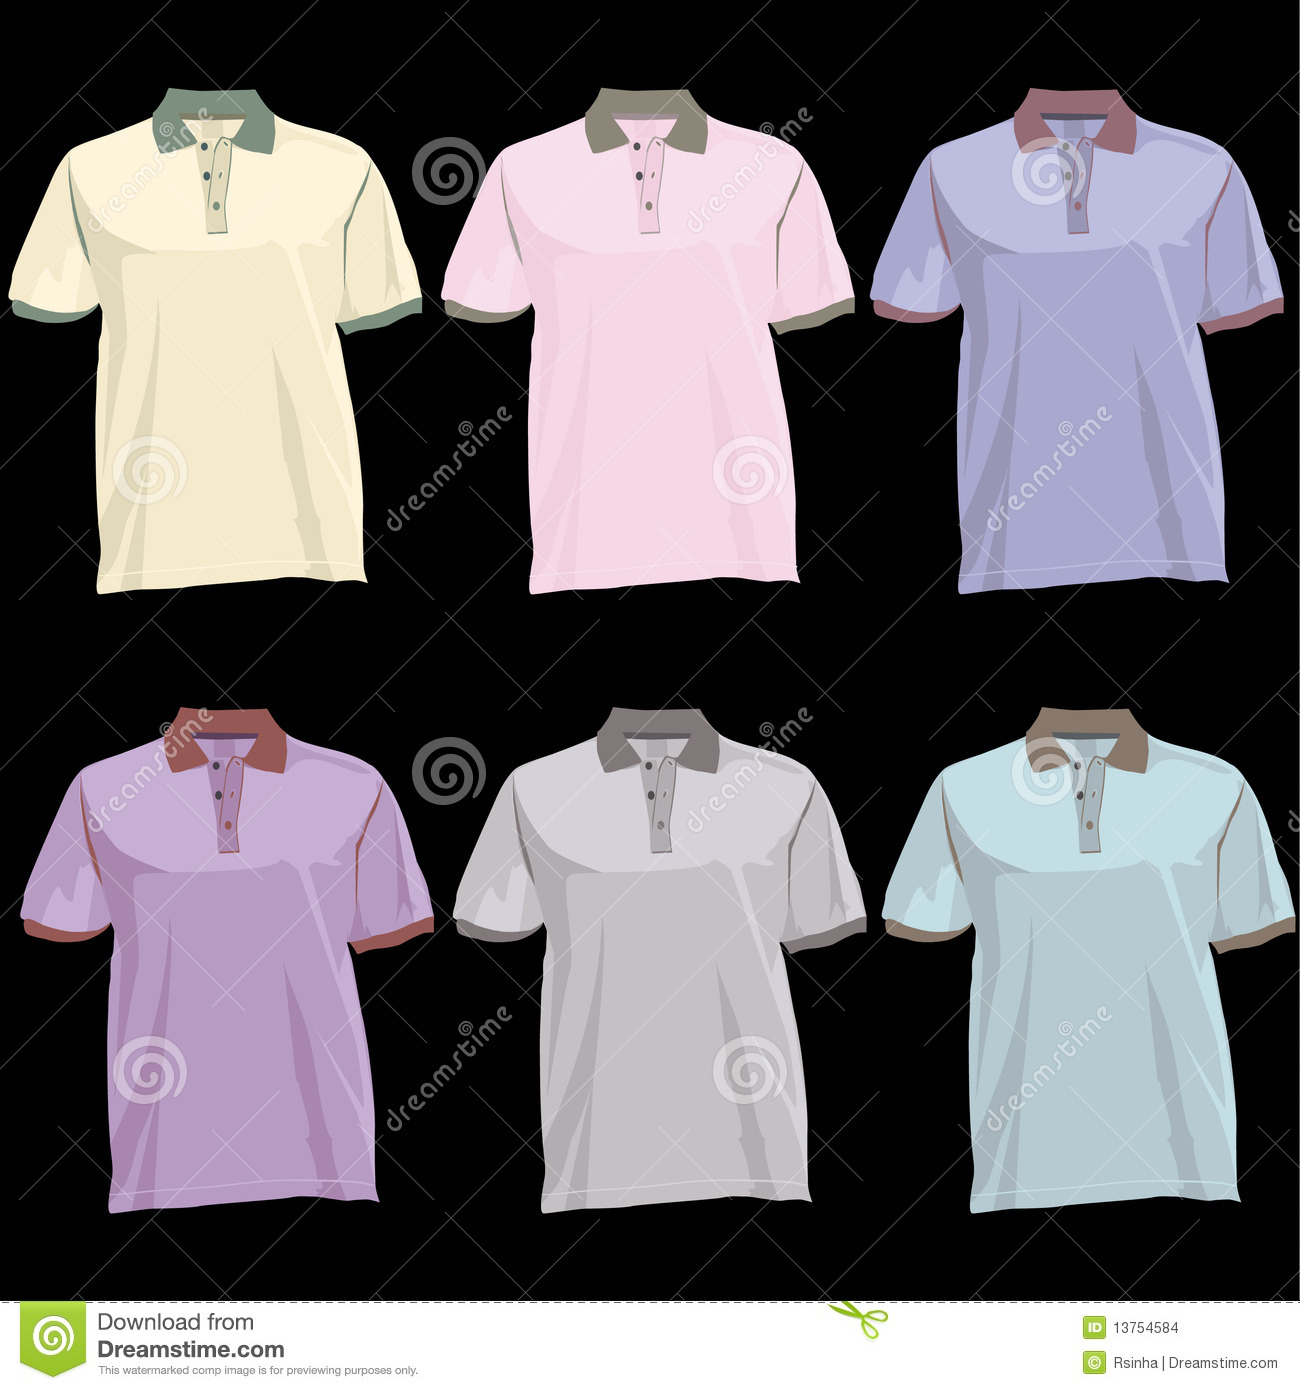 Polo t shirt template with collar front and back stock for Collar shirt design template